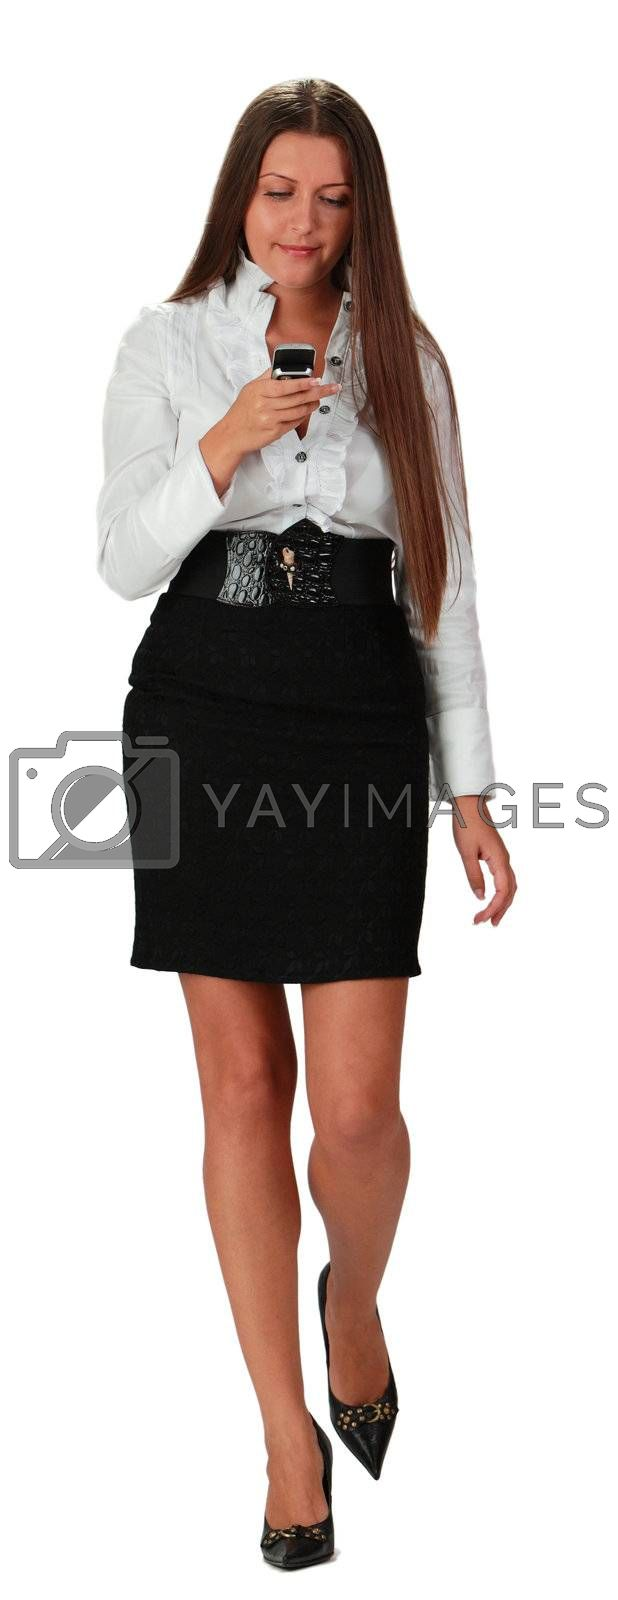 Image of a young businesswoman checking her mobile phone while is walking,isolated against a white background.